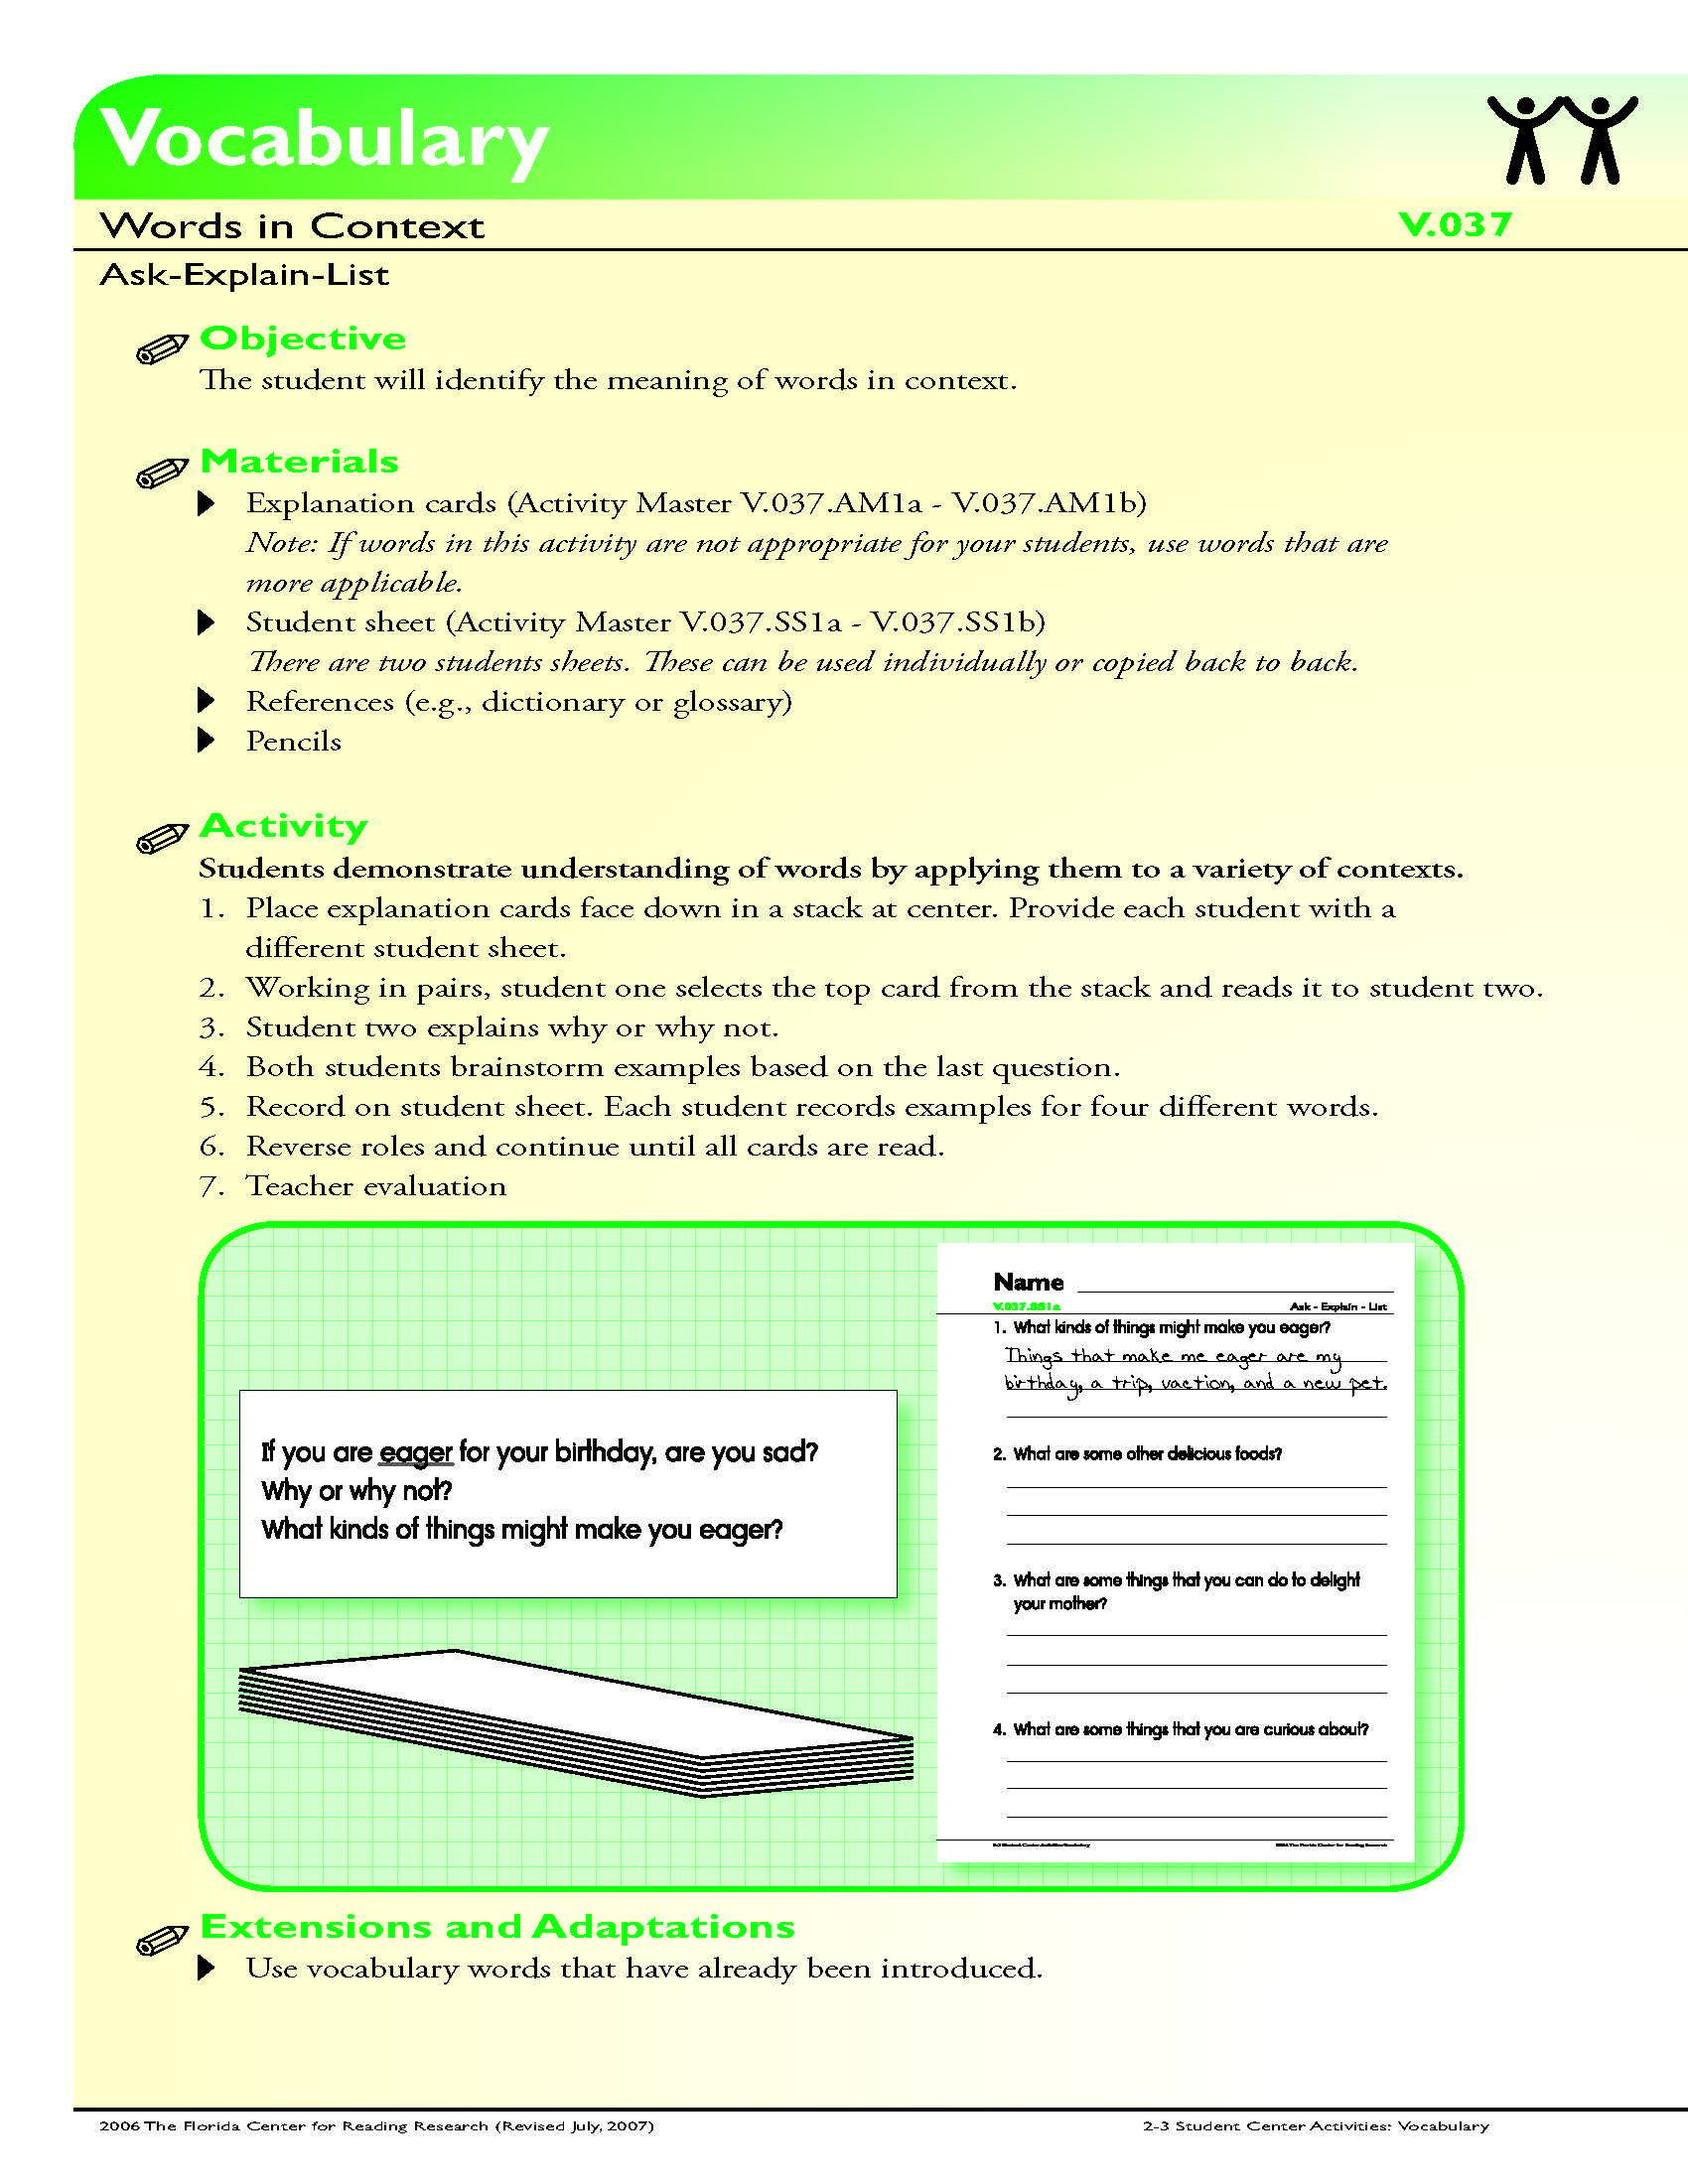 Context Clues Worksheets 6th Grade the Student Will Identify the Meaning Of Words In Context